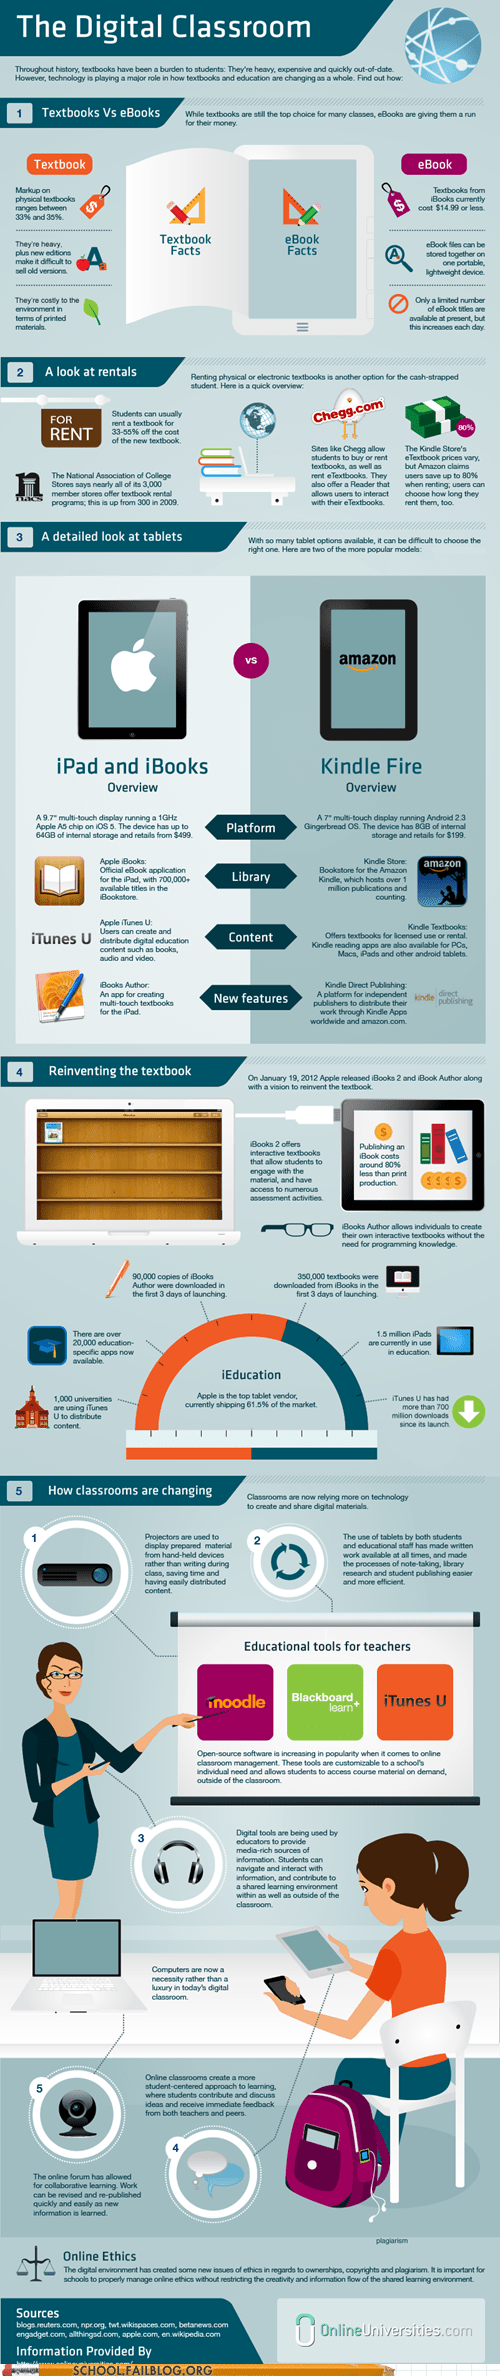 The Future of the Digital Classroom